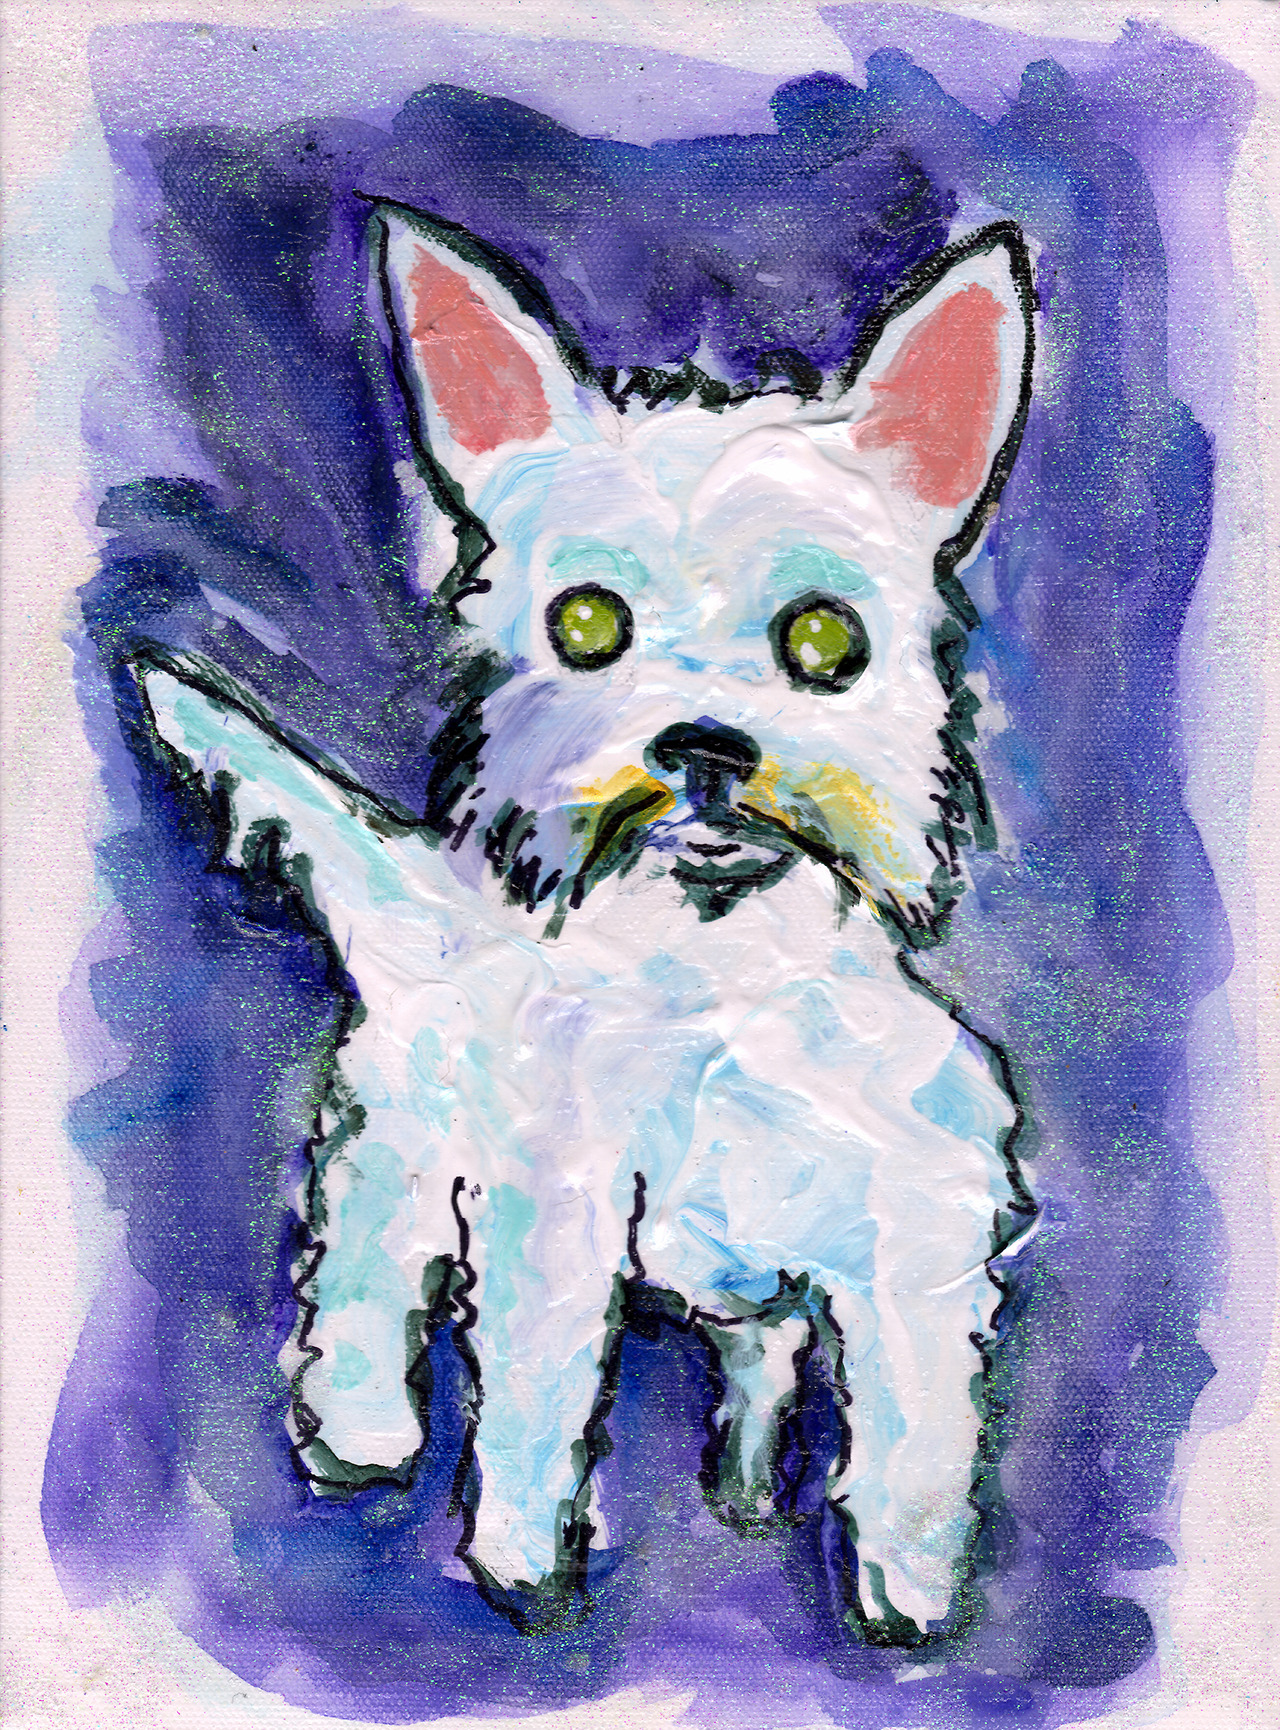 12/22/13 - Annie the Midwestie! Christine and Chris pledged another kickstarter piece. This time they wanted me to paint her parents' (my aunt Cathy and uncle Dan's) dog, Annie. She's a rambunctious one. Oh, and near as I can tell, none of them have fed any dogs fudge today. So it's a good day. Happy holidays! I hope you all like the piece!